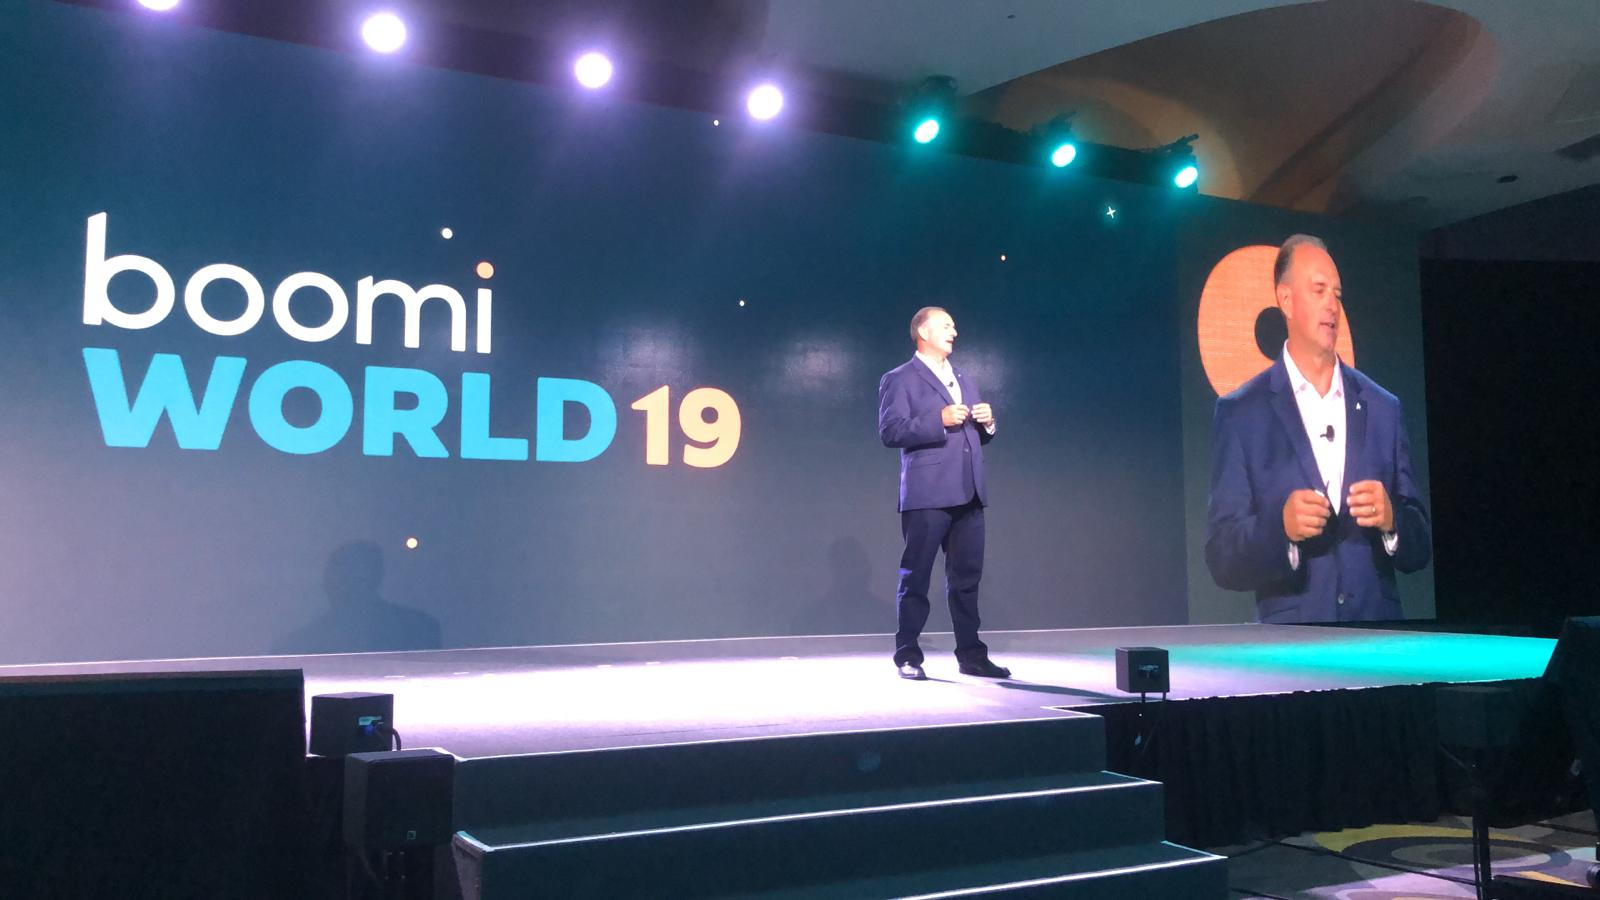 Conclusion de BoomiWorld 2019 - Blogs insuffisants